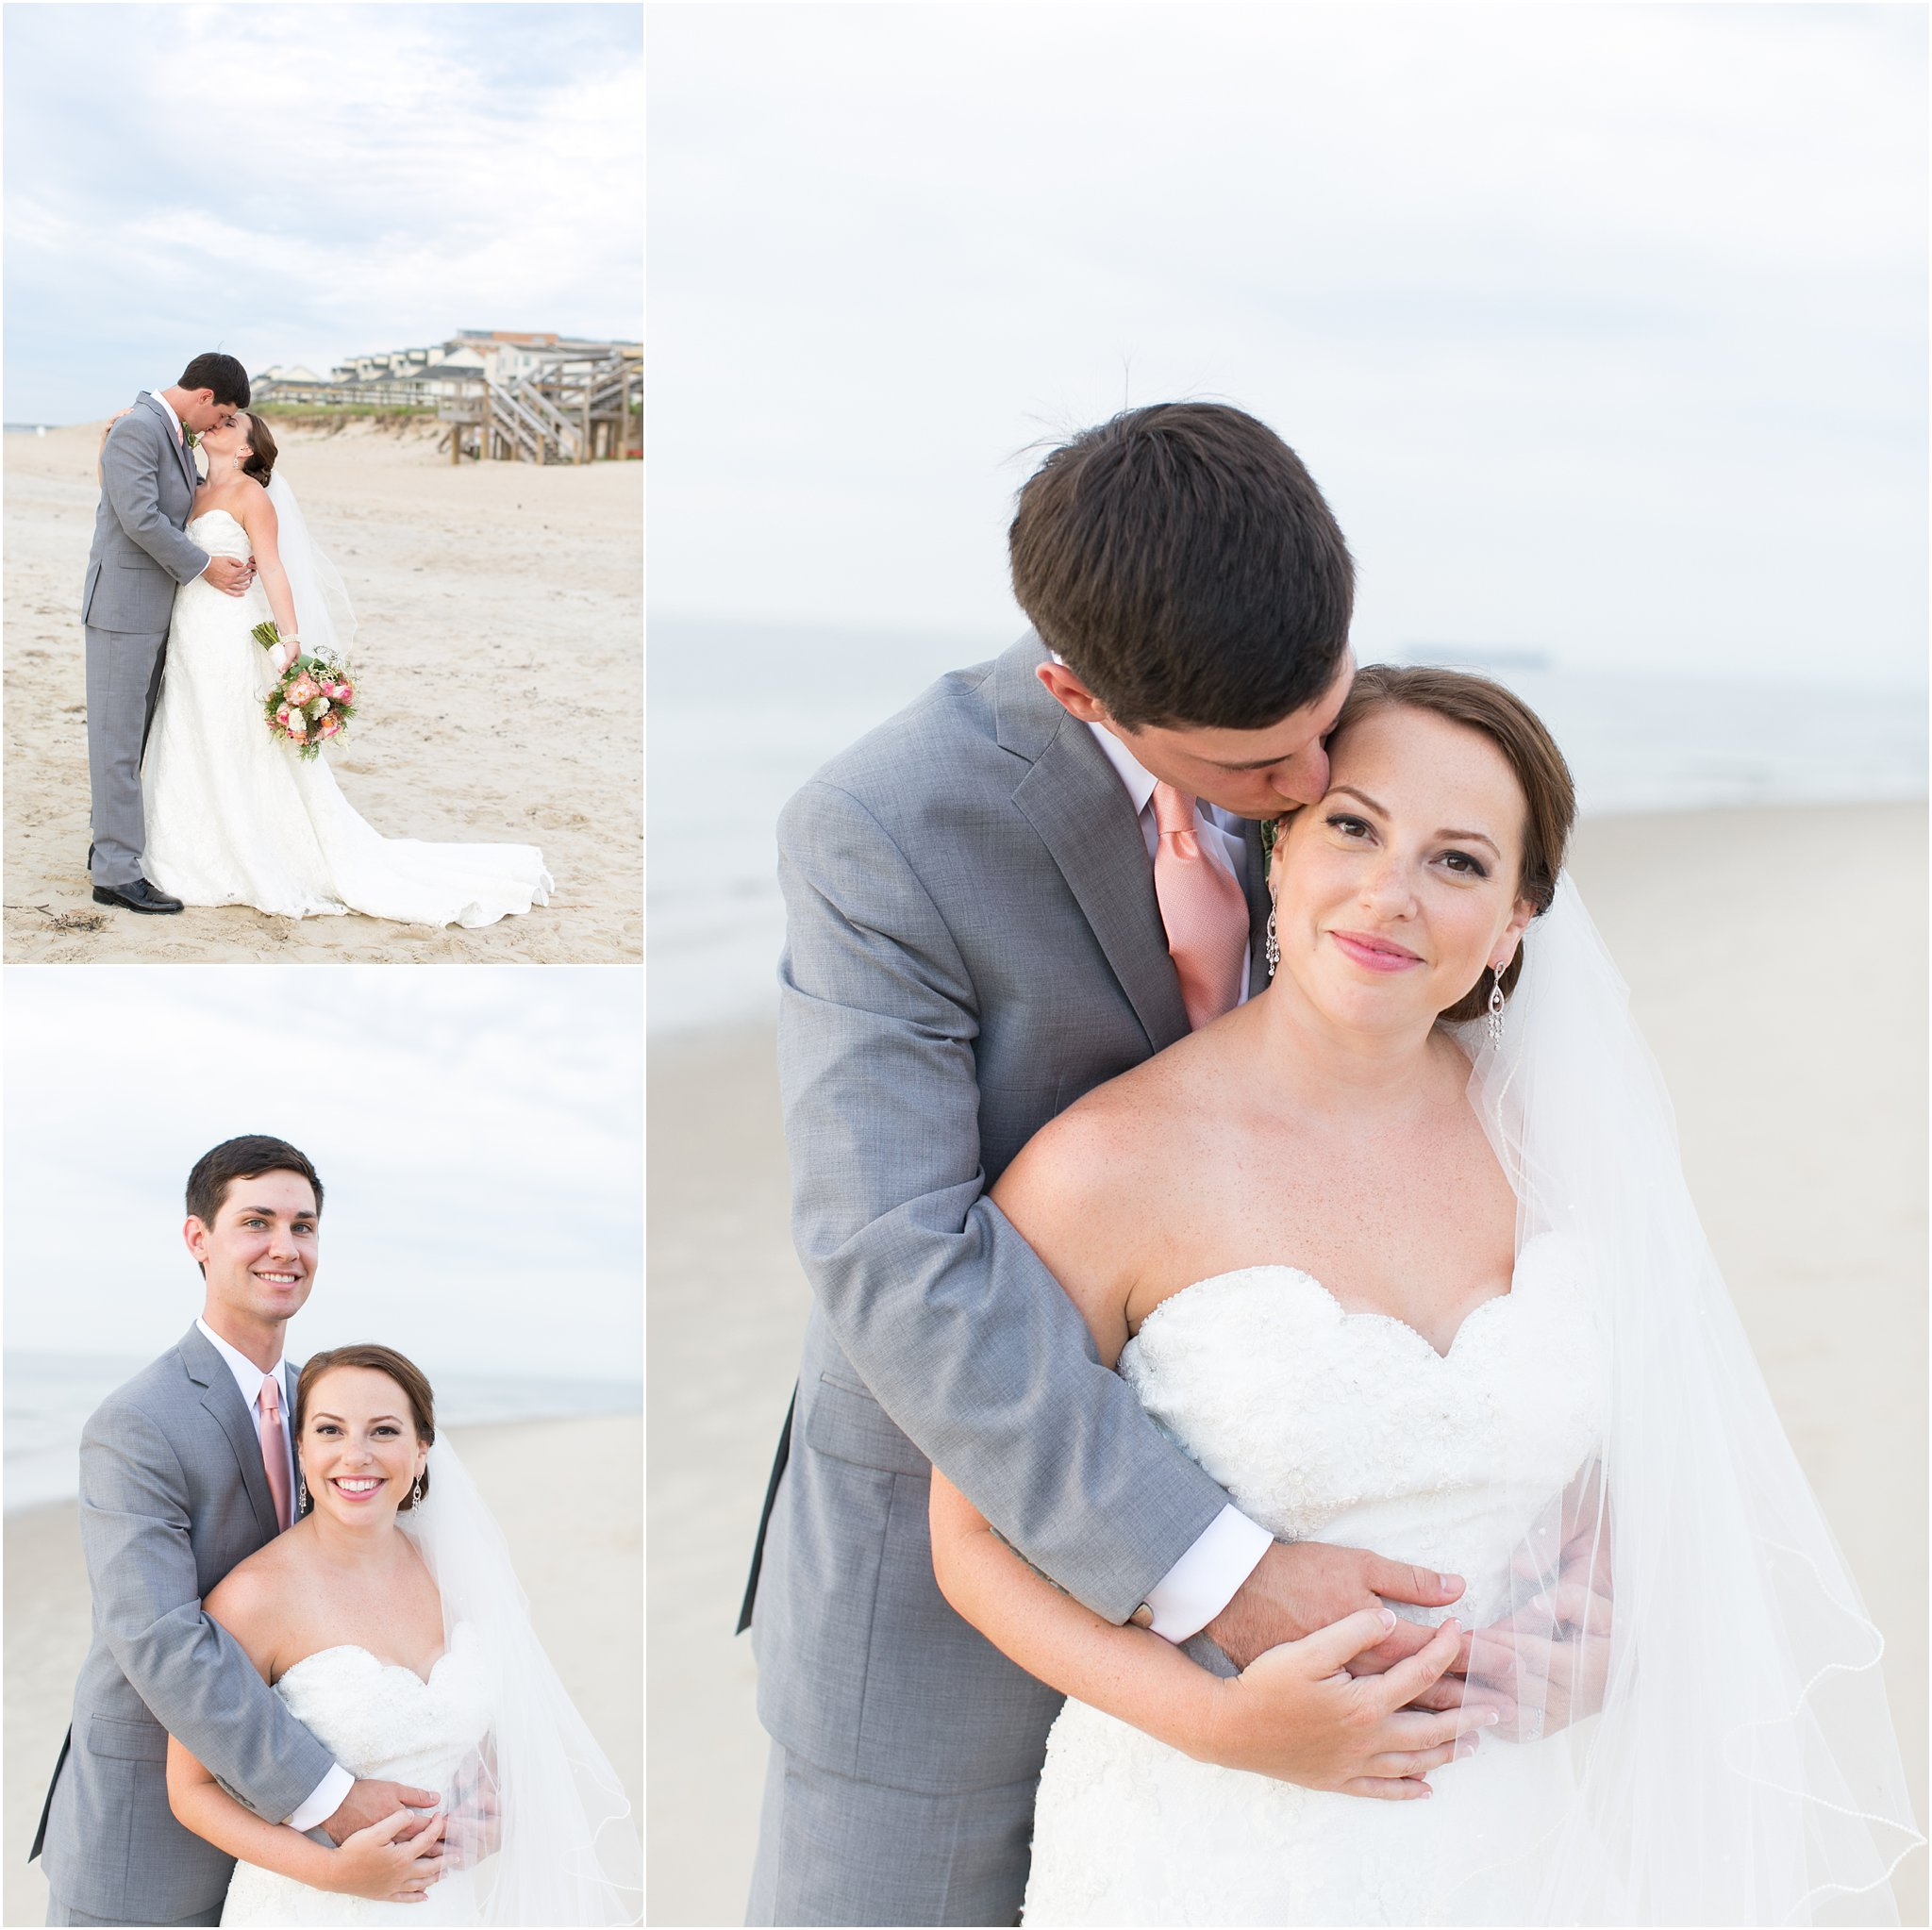 jessica_ryan_photography_wedding_photography_virginiabeach_virginia_candid_authentic_wedding_portraits_marina_shores_yacht_club_chesapeake_bay_1874